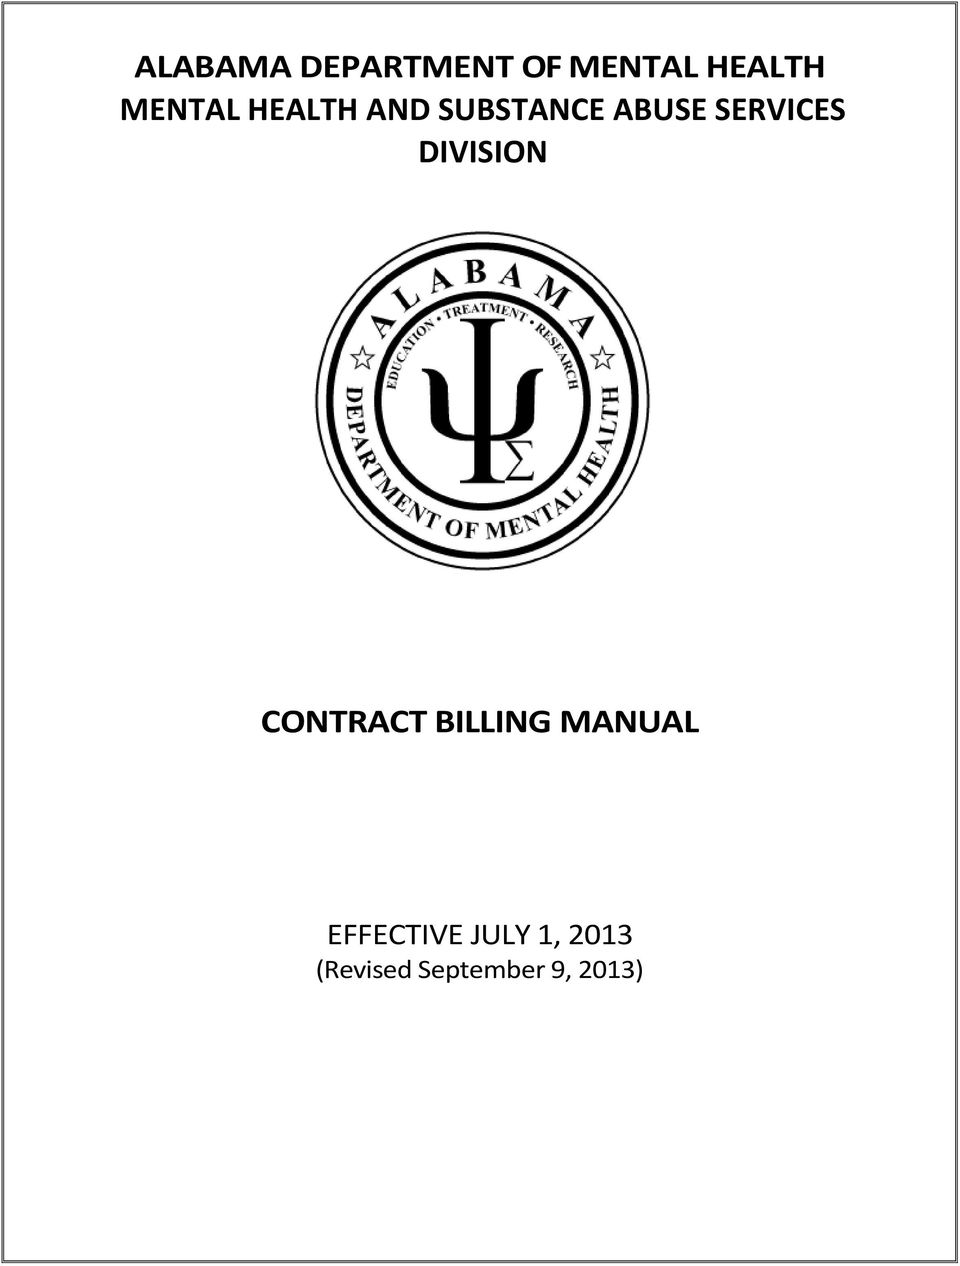 SERVICES DIVISION CONTRACT BILLING